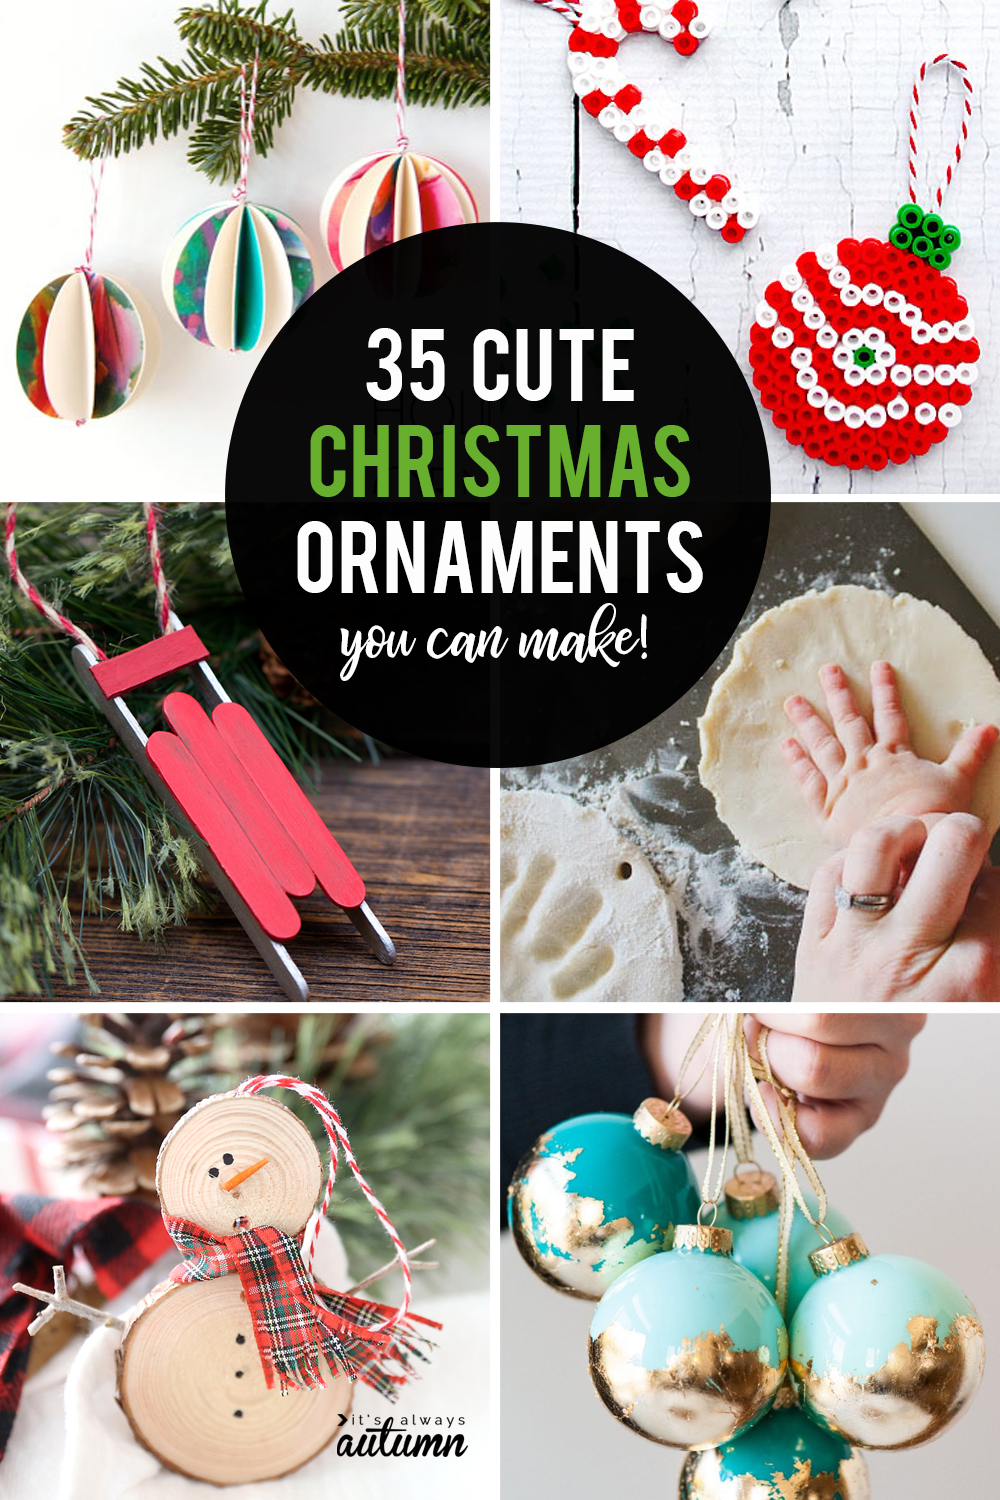 35 gorgeous homemade Christmas ornaments you can make at home!